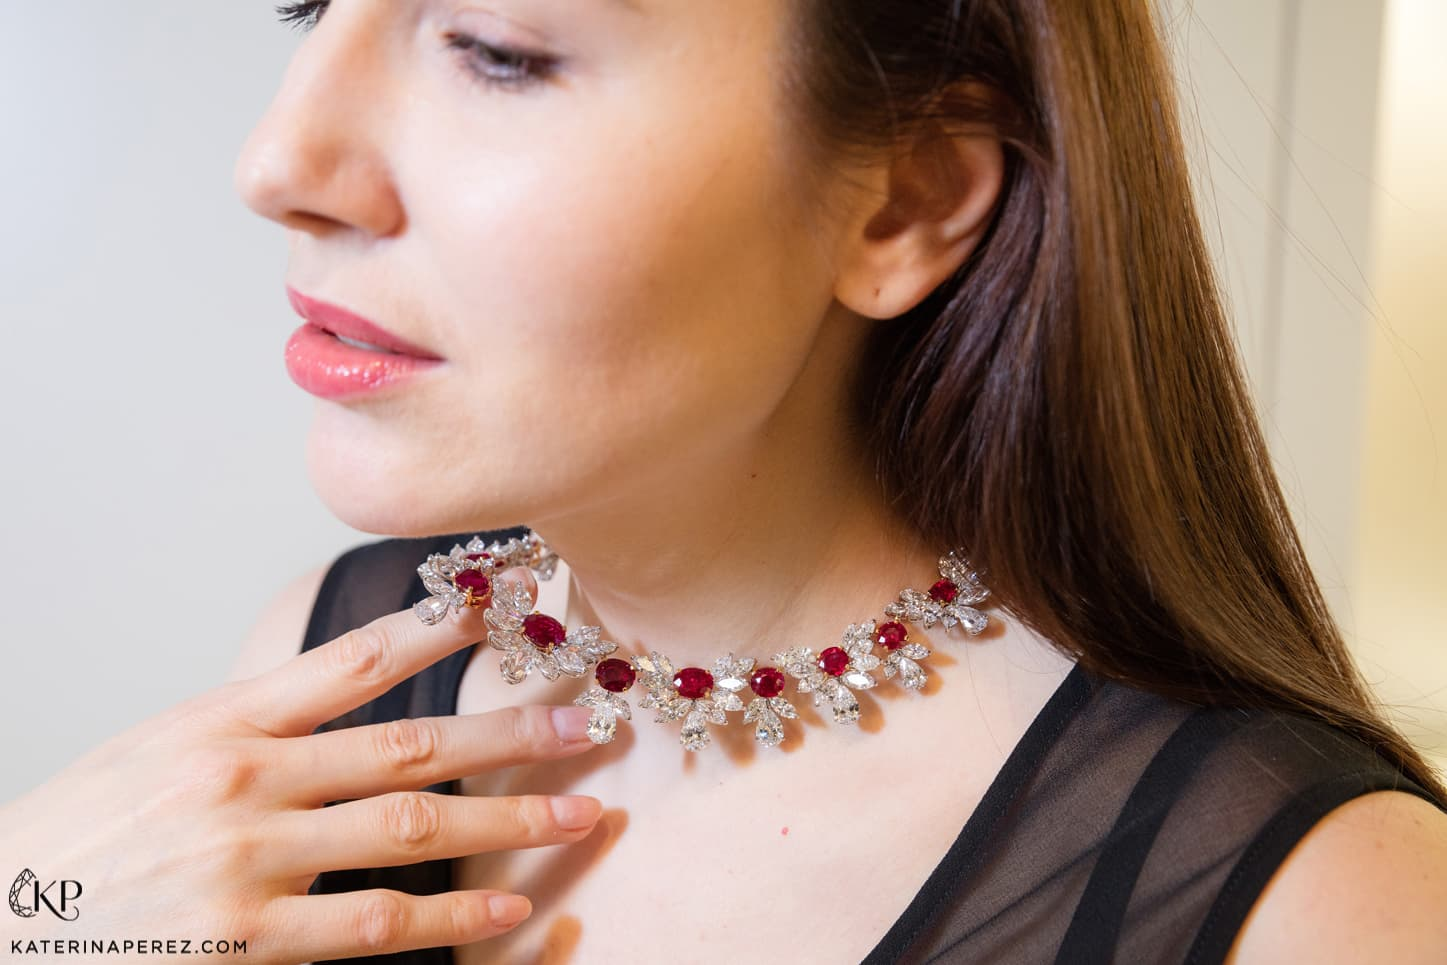 Faidee 'The Grand Phoenix' necklace with Burmese pigeon's blood rubies and 100.21ct diamonds in white gold